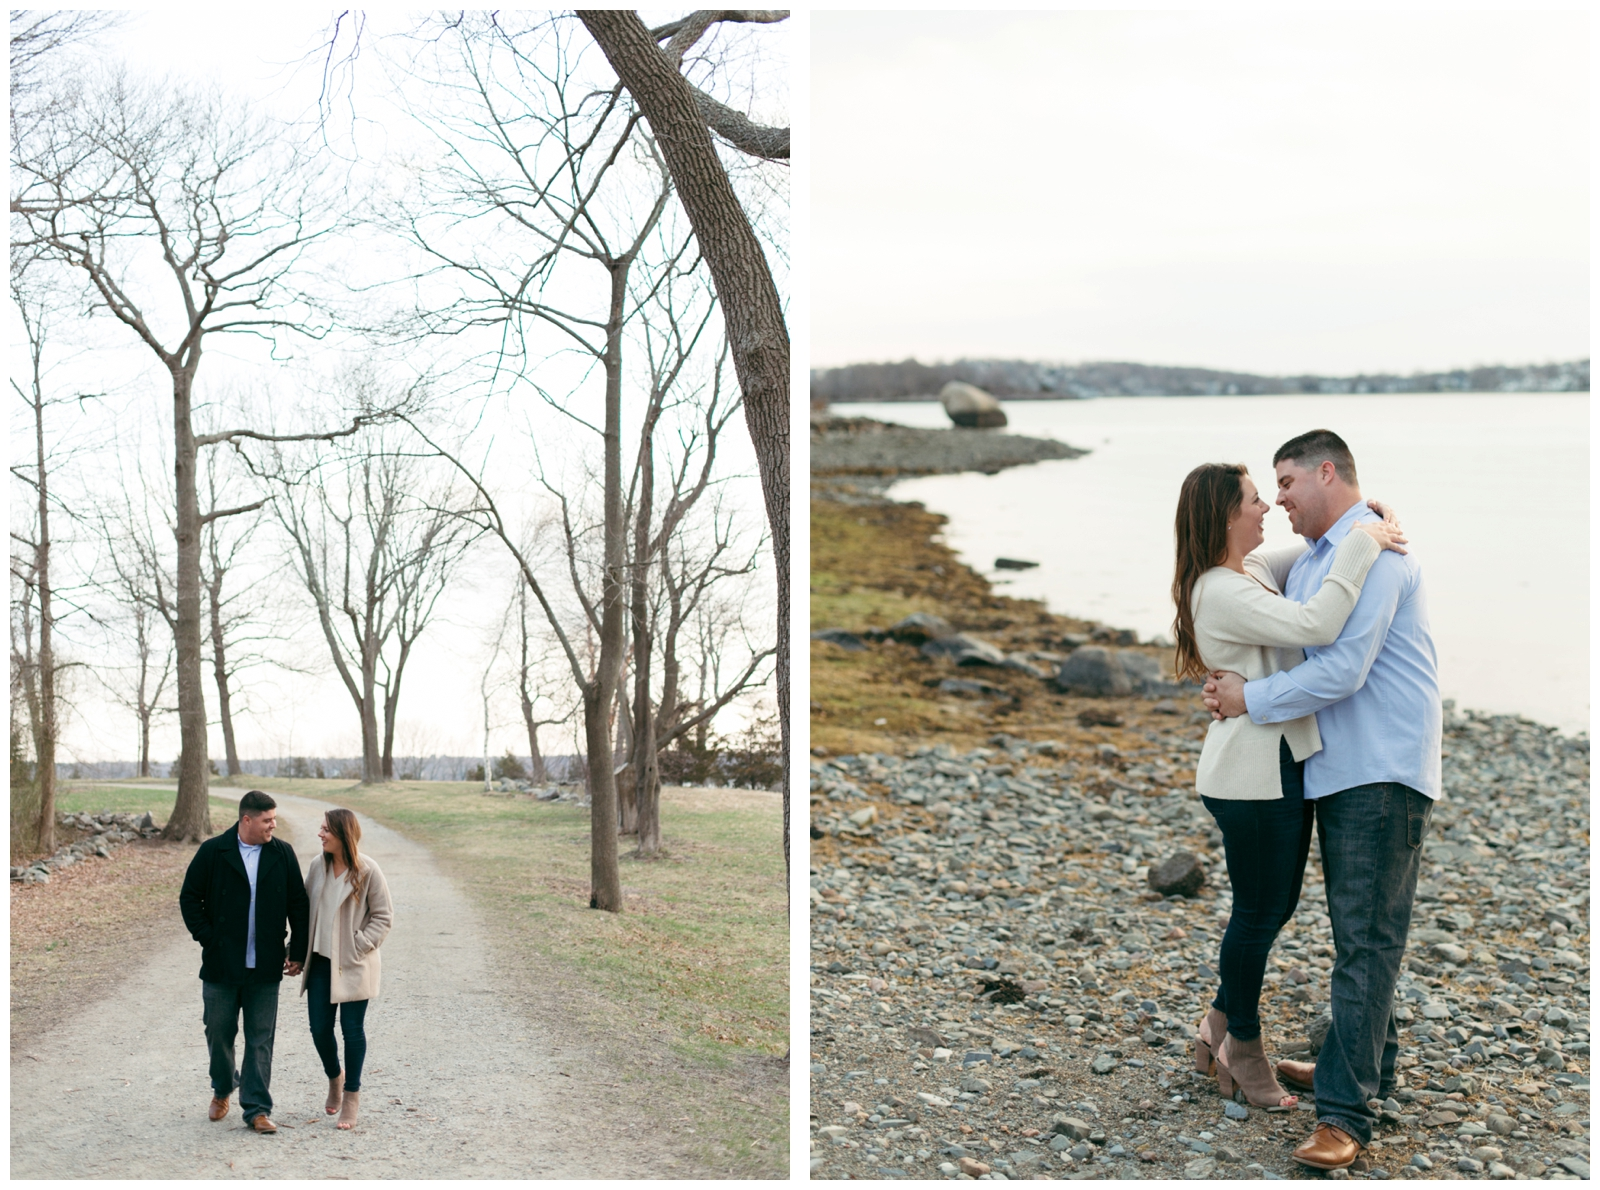 Boston-Engagement-Worlds-End-Boston-Wedding-Photographer-Bailey-Q-Photo-019.JPG